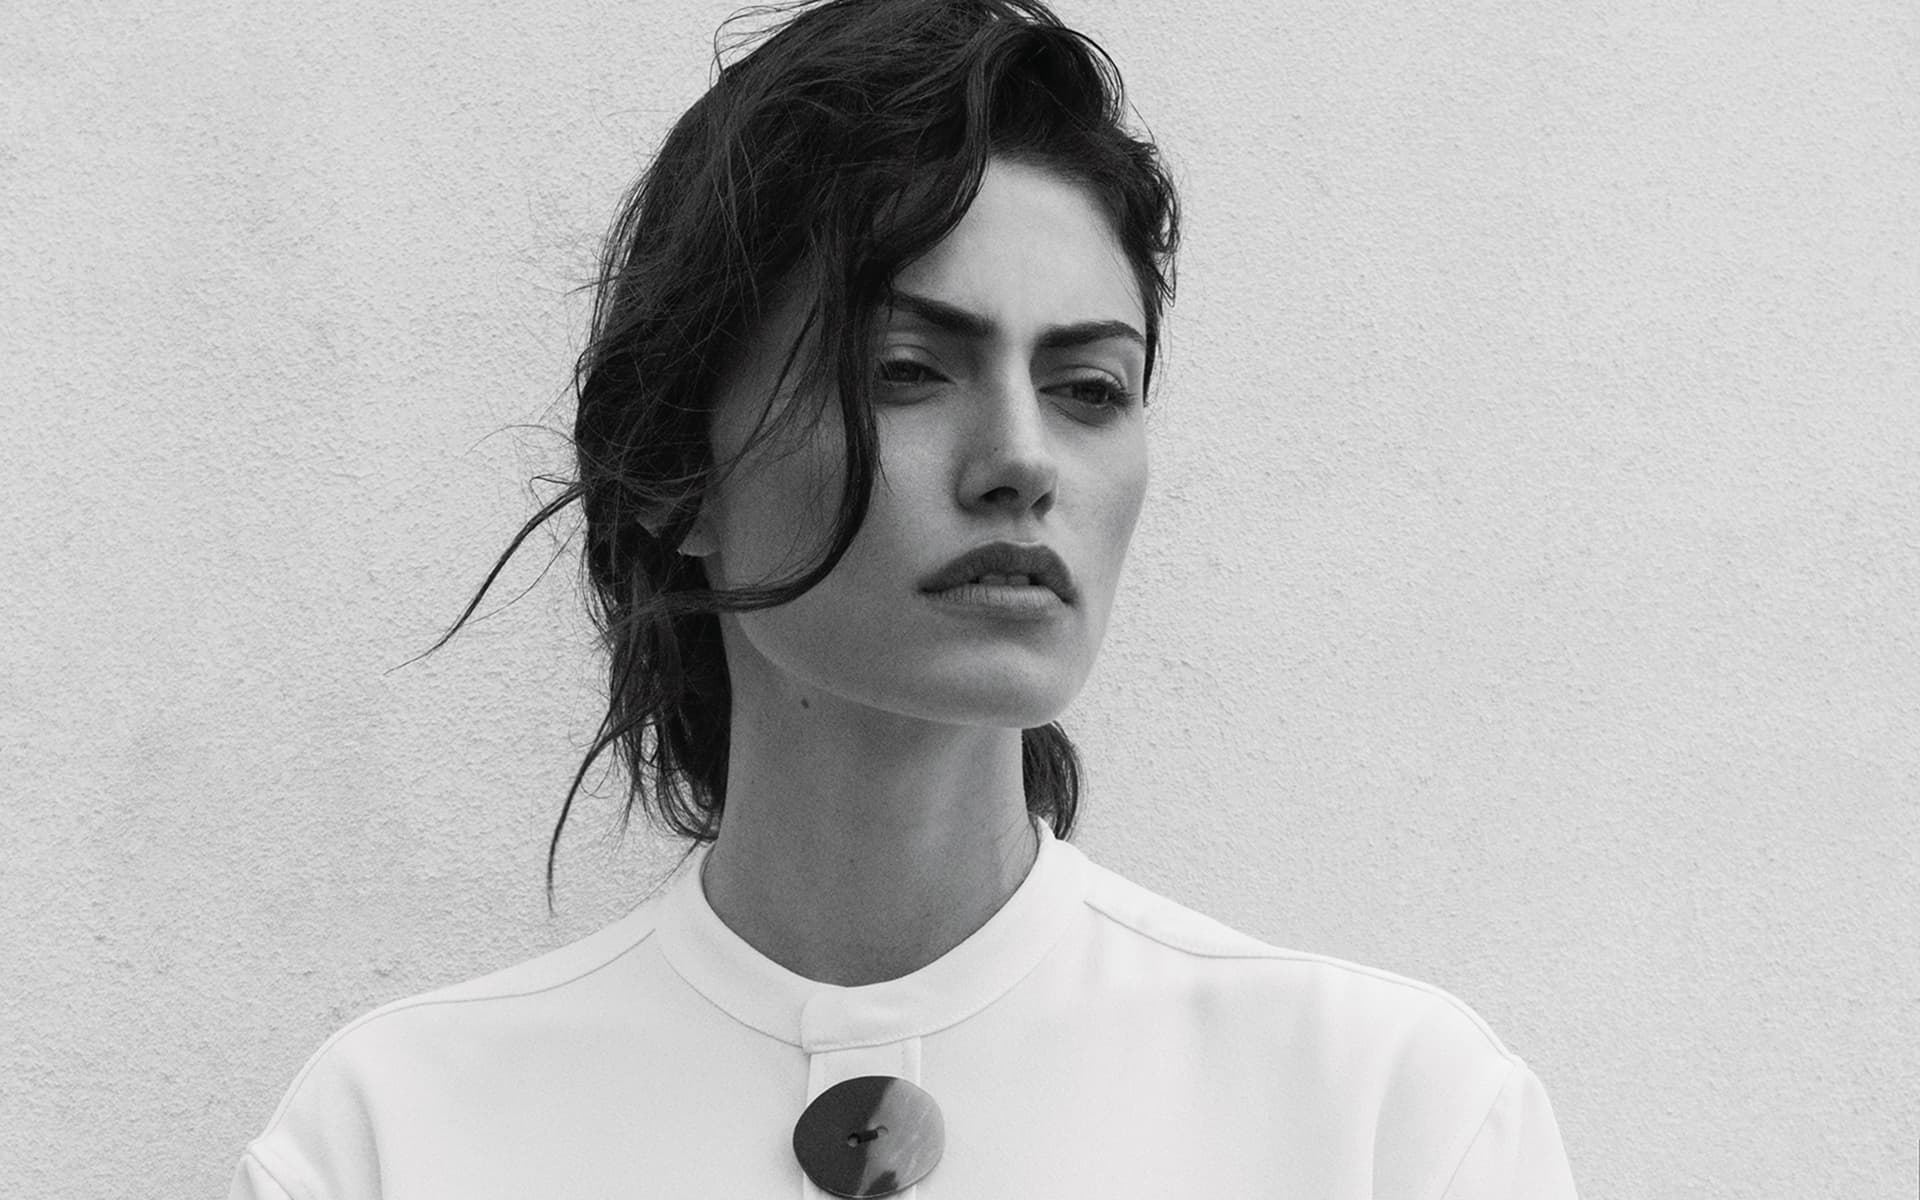 Phoebe Tonkin style HQ pictures